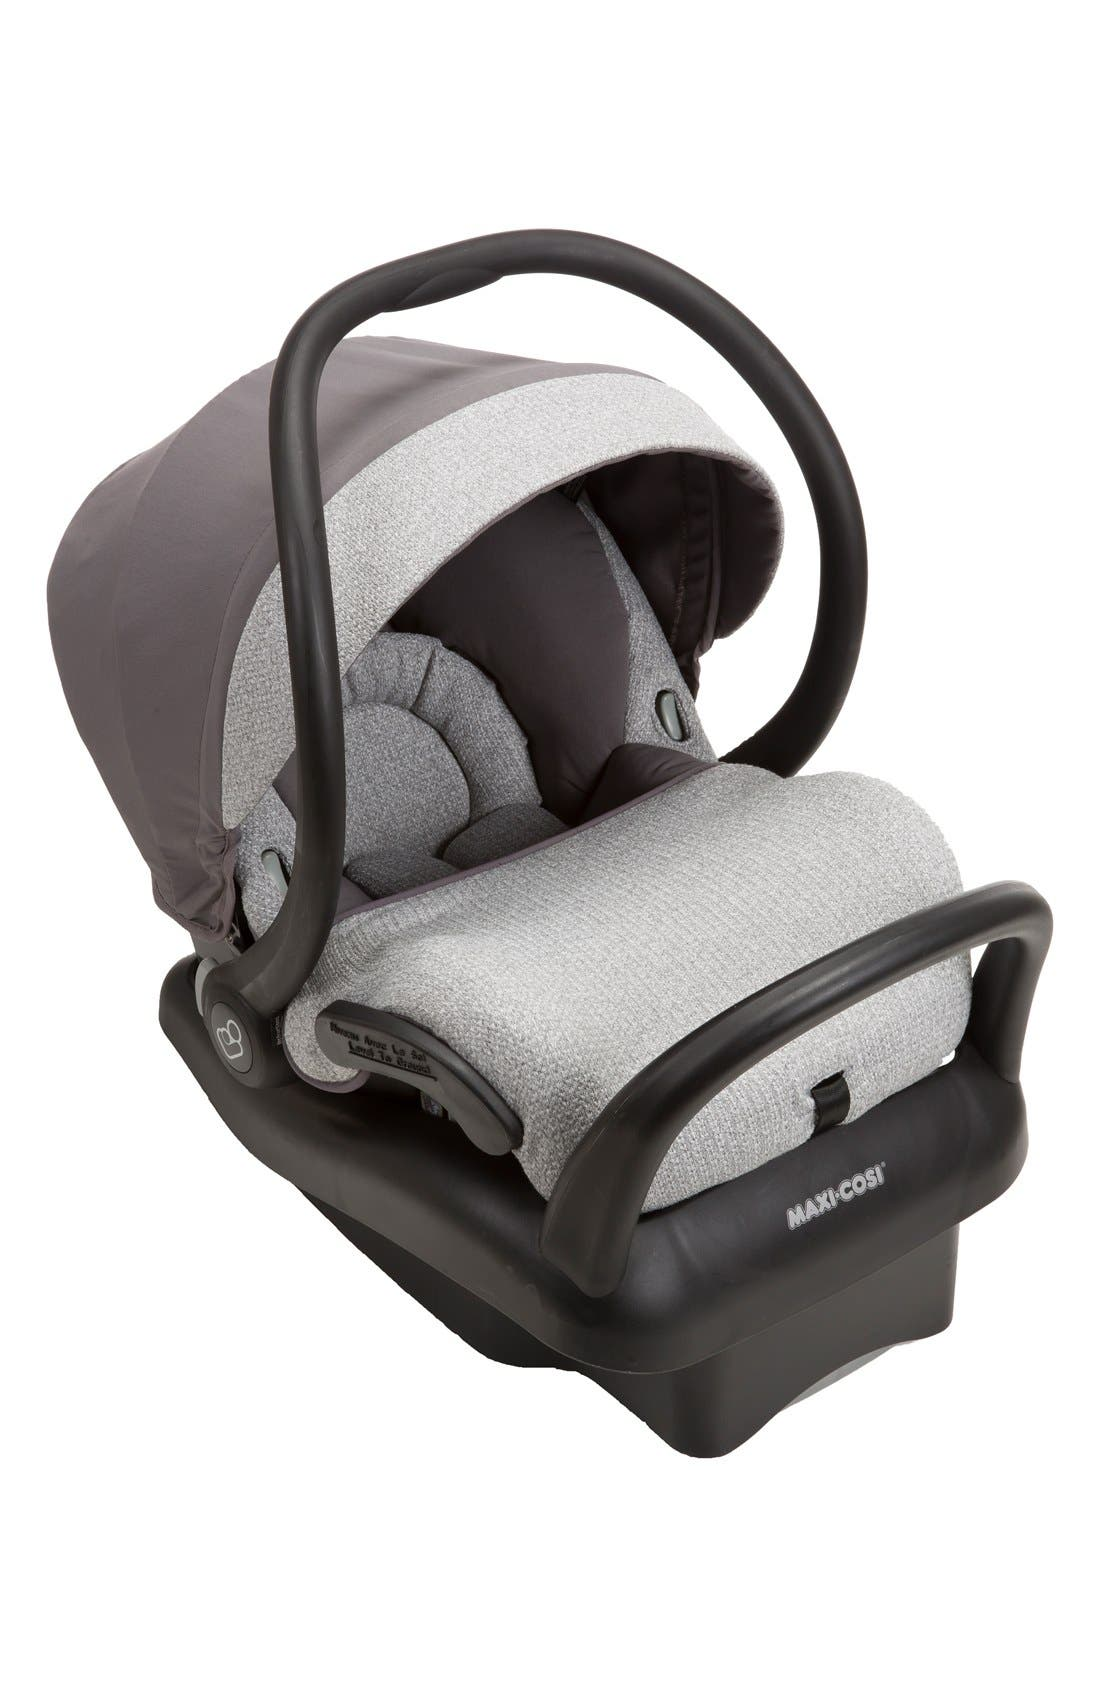 'Mico Max 30 - Sweater Knit Special Edition' Infant Car Seat,                             Main thumbnail 1, color,                             020